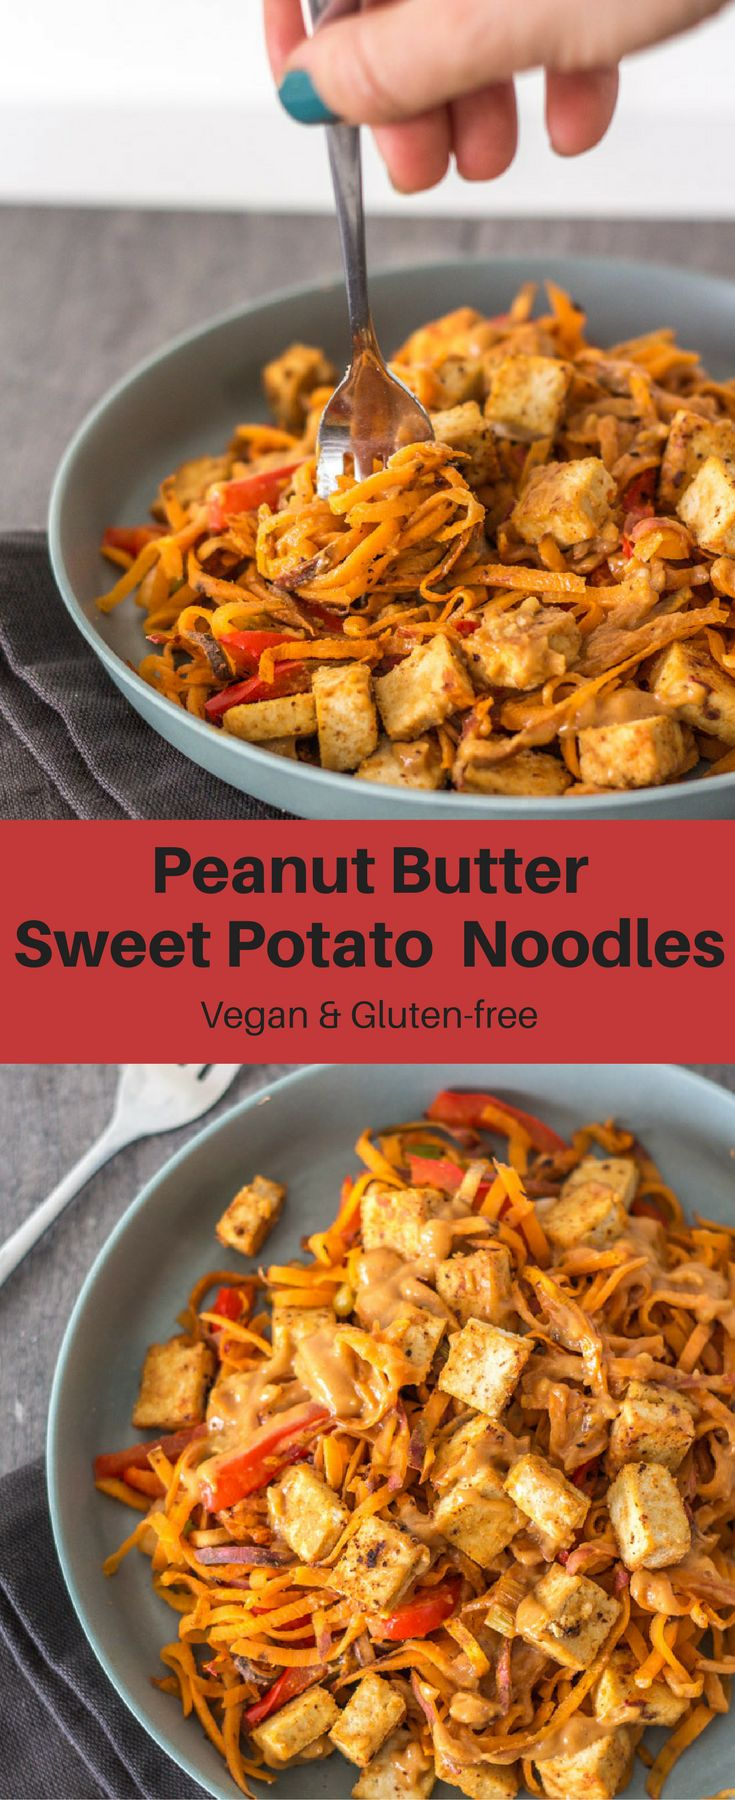 Peanut Butter Sweet Potato Noodles with red bell pepper, spring onion, tofu, and an addicting peanut butter sauce! It's creamy, delicious, and healthy!